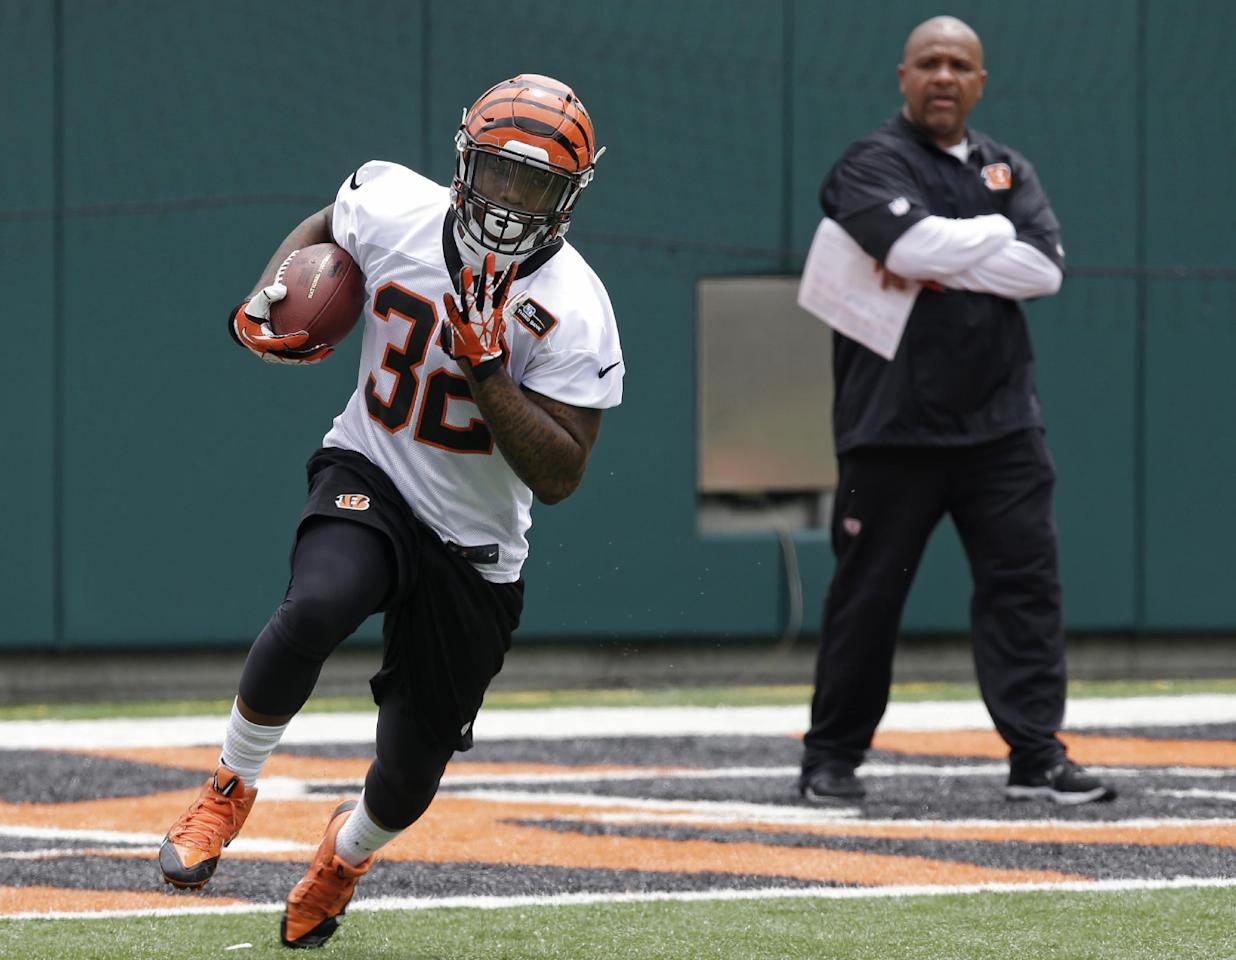 Cincinnati Bengals second round draft pick Jeremy Hill, a running back out of LSU, runs the ball under the eye of offensive coordinator Hue Jackson during an NFL football mandatory minicamp, Tuesday, June 10, 2014, in Cincinnati. (AP Photo/Al Behrman)